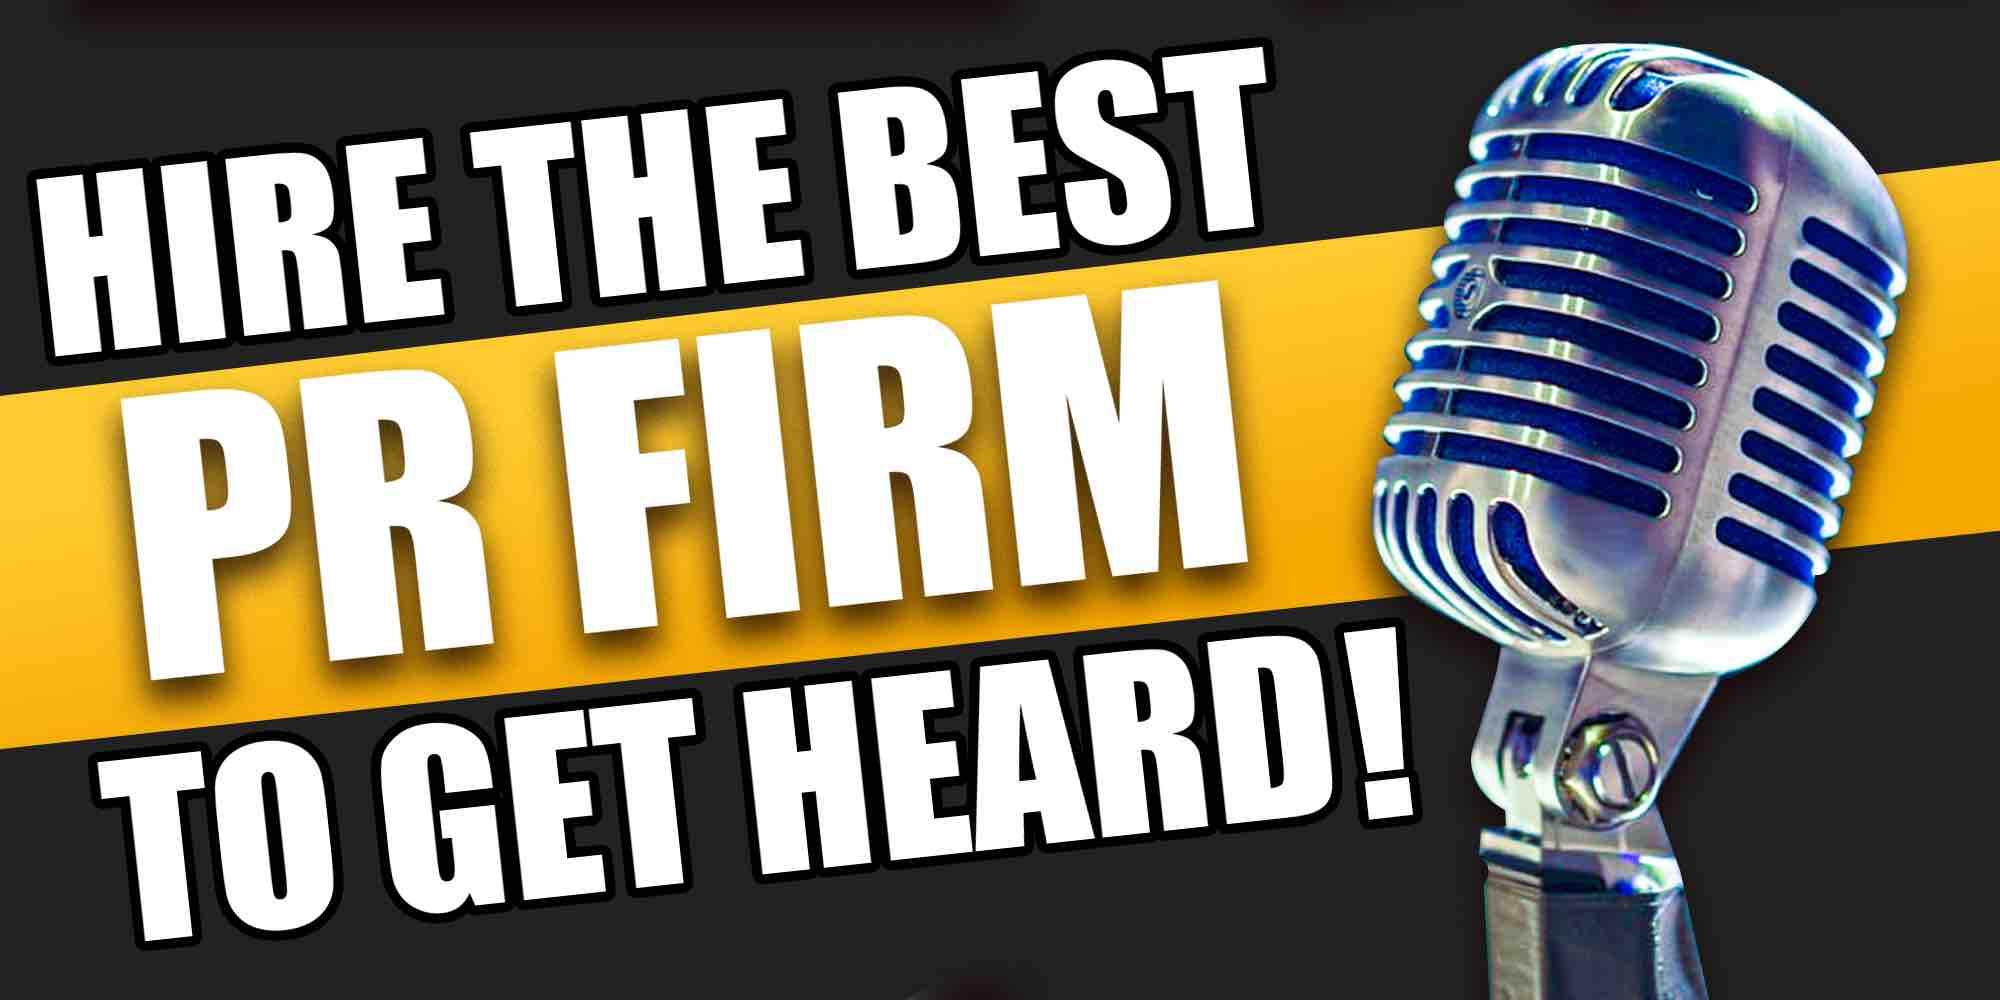 Hire the Best music PR firm